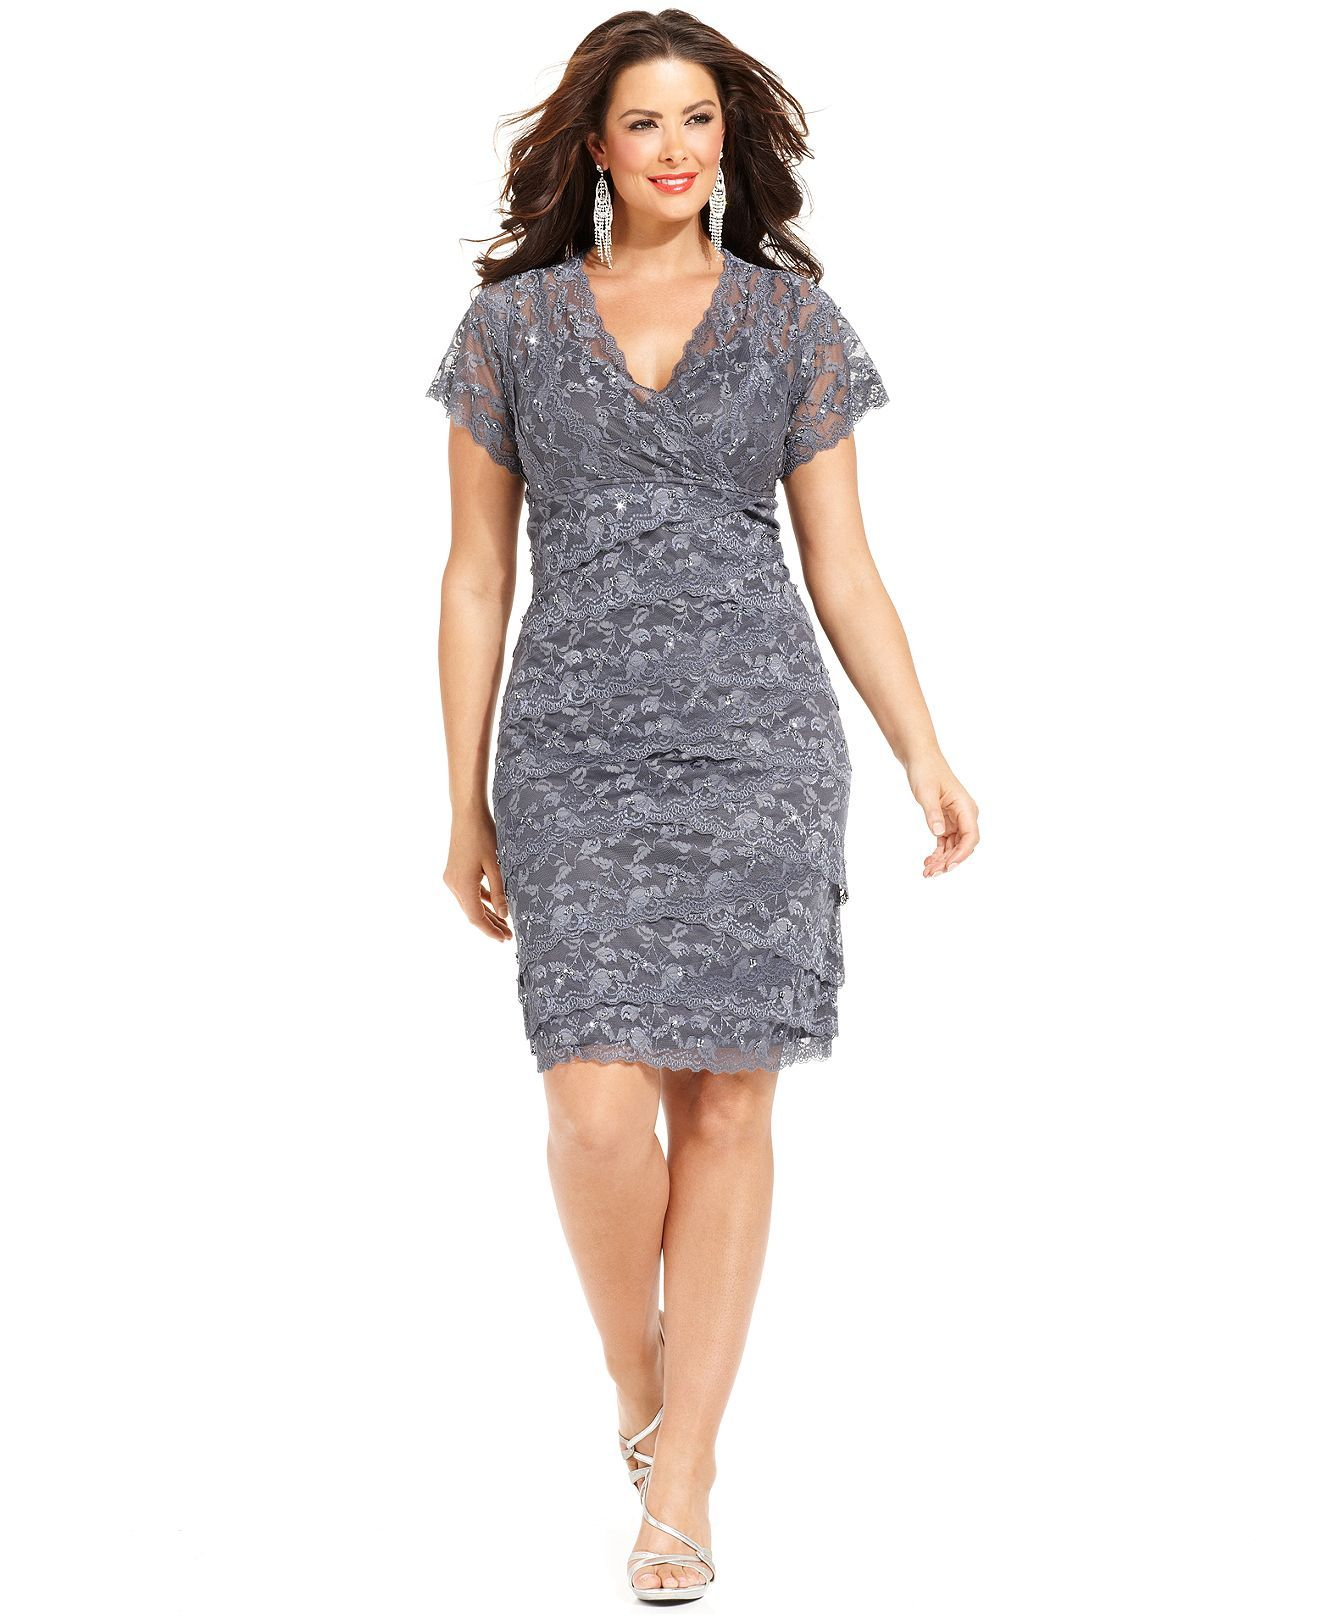 Plus Size Cocktail Evening Dresses with Sleeves